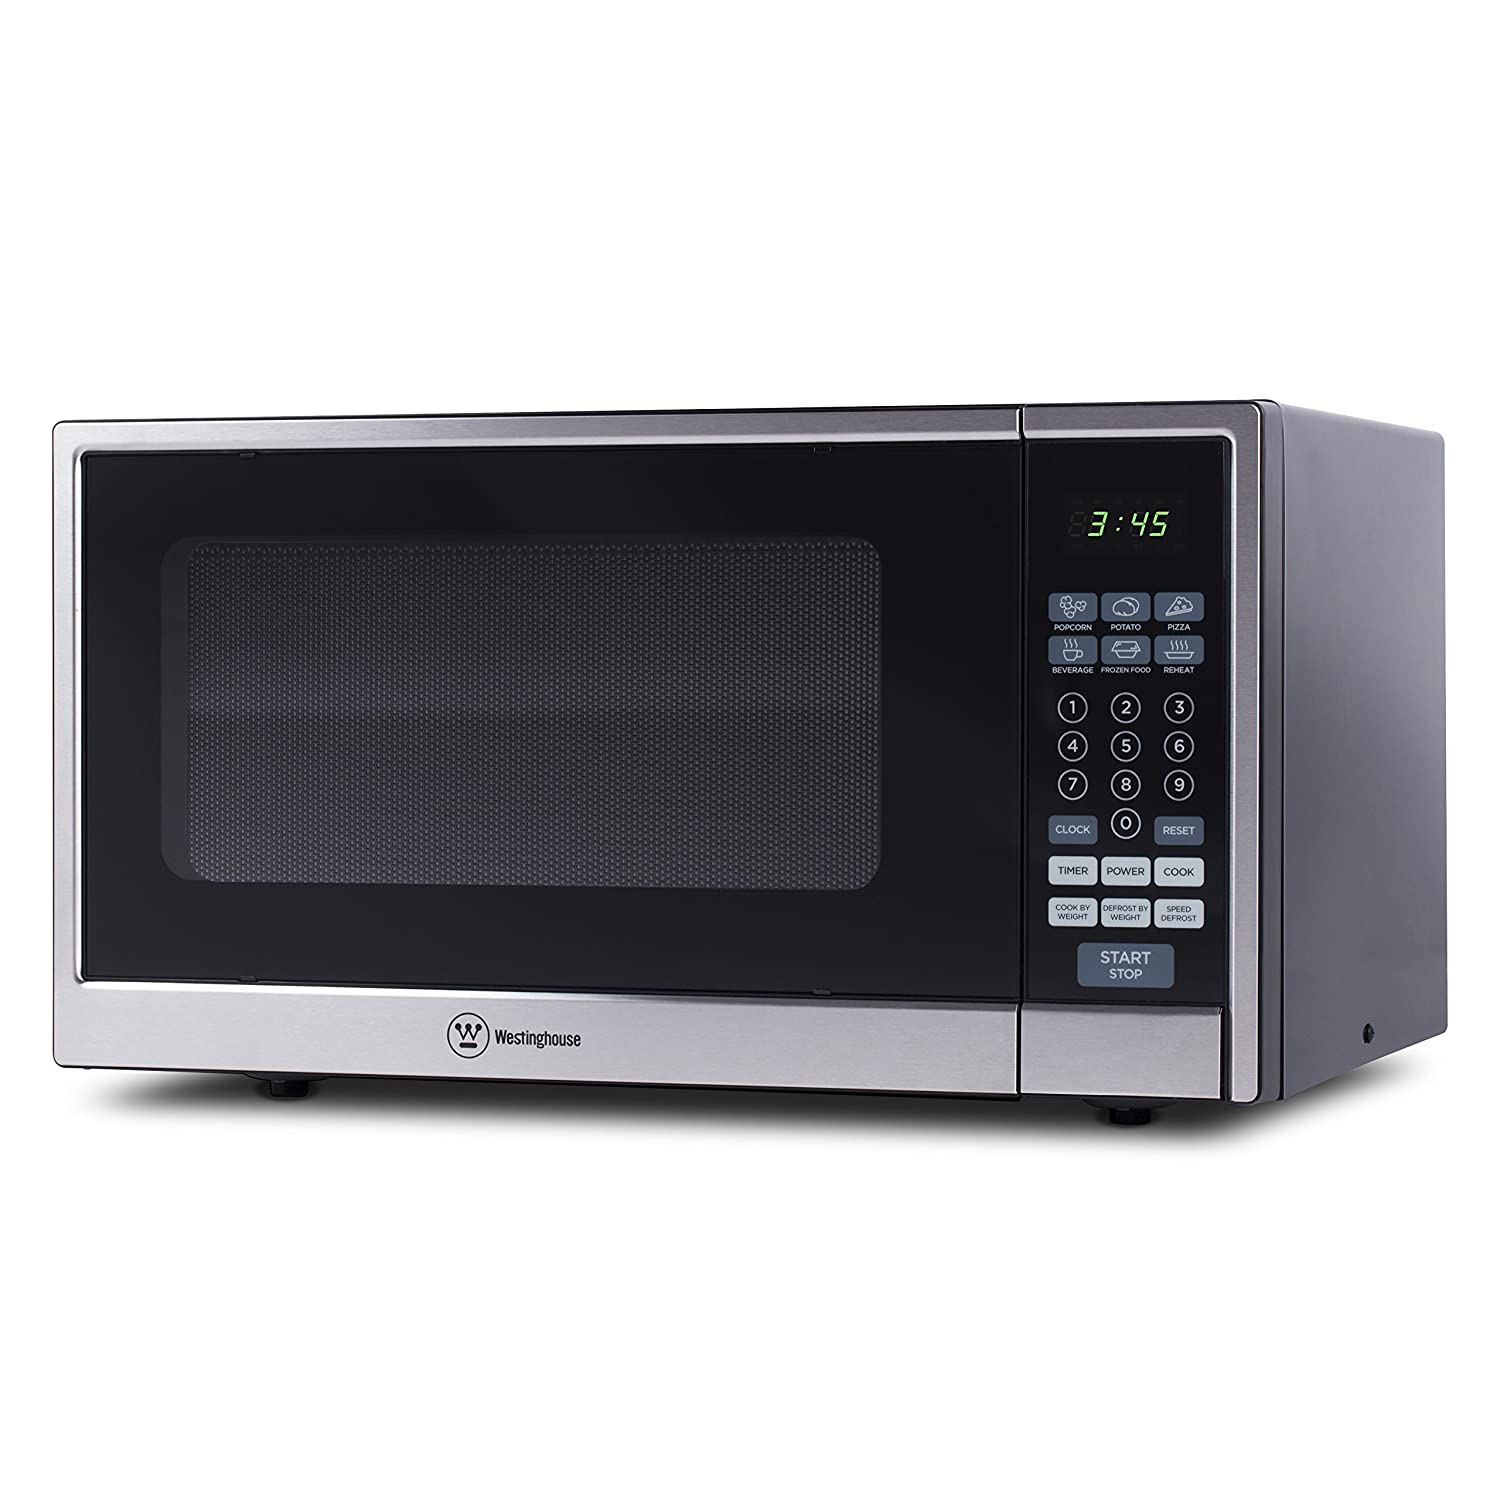 Westinghouse, WCM11100SS, Countertop Microwave Oven, 1000 Watt, 1.1 Cubic Feet, Stainless Steel Front, Black Cabinet, Small